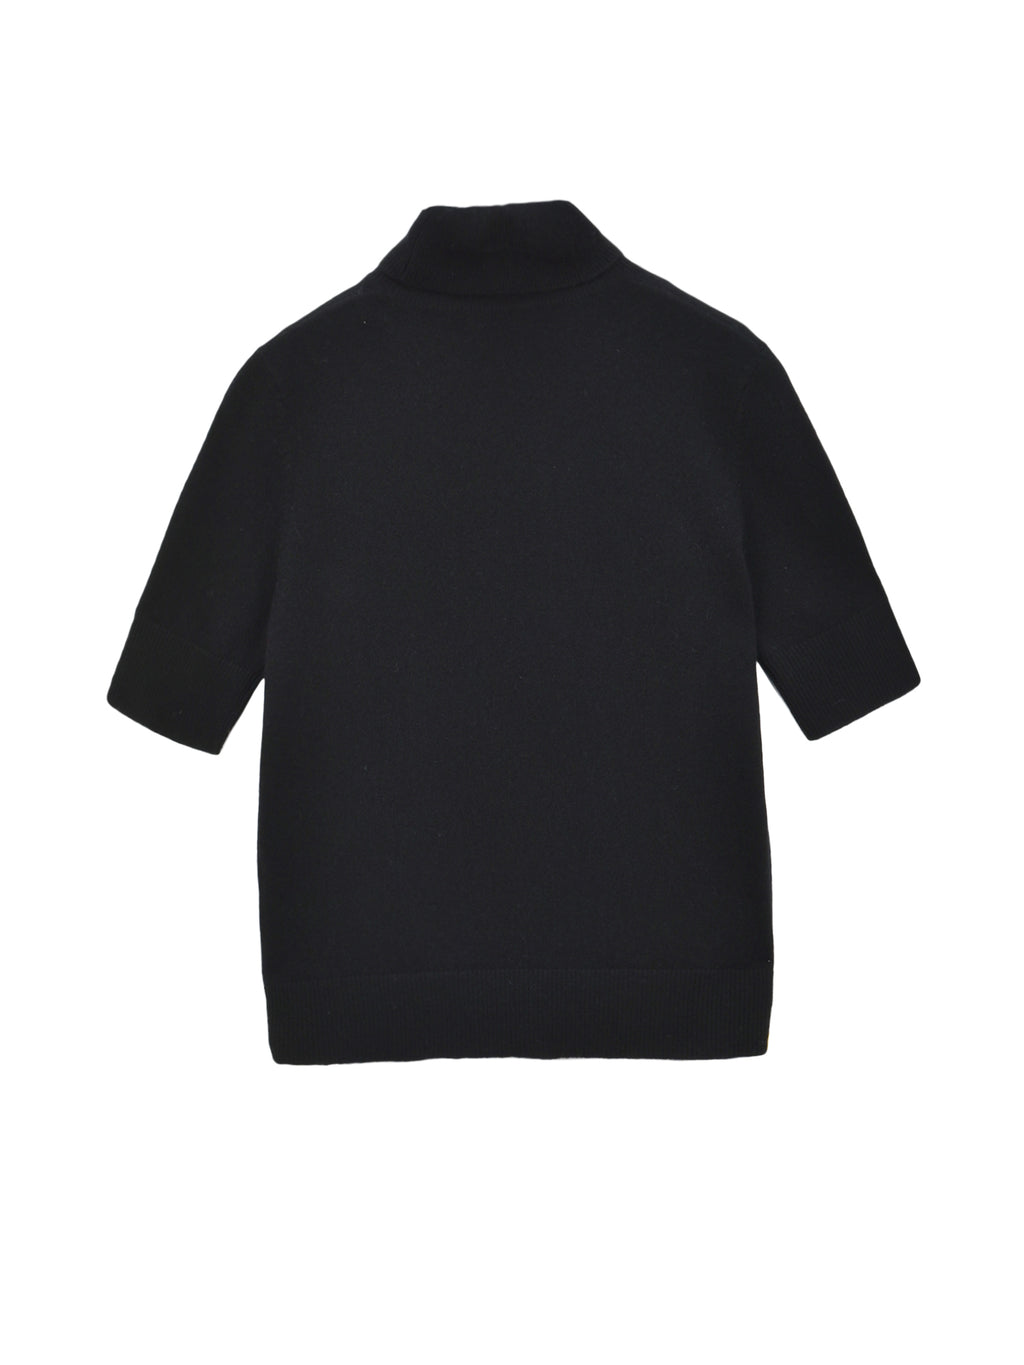 Turtleneck Shortsleeve_Black